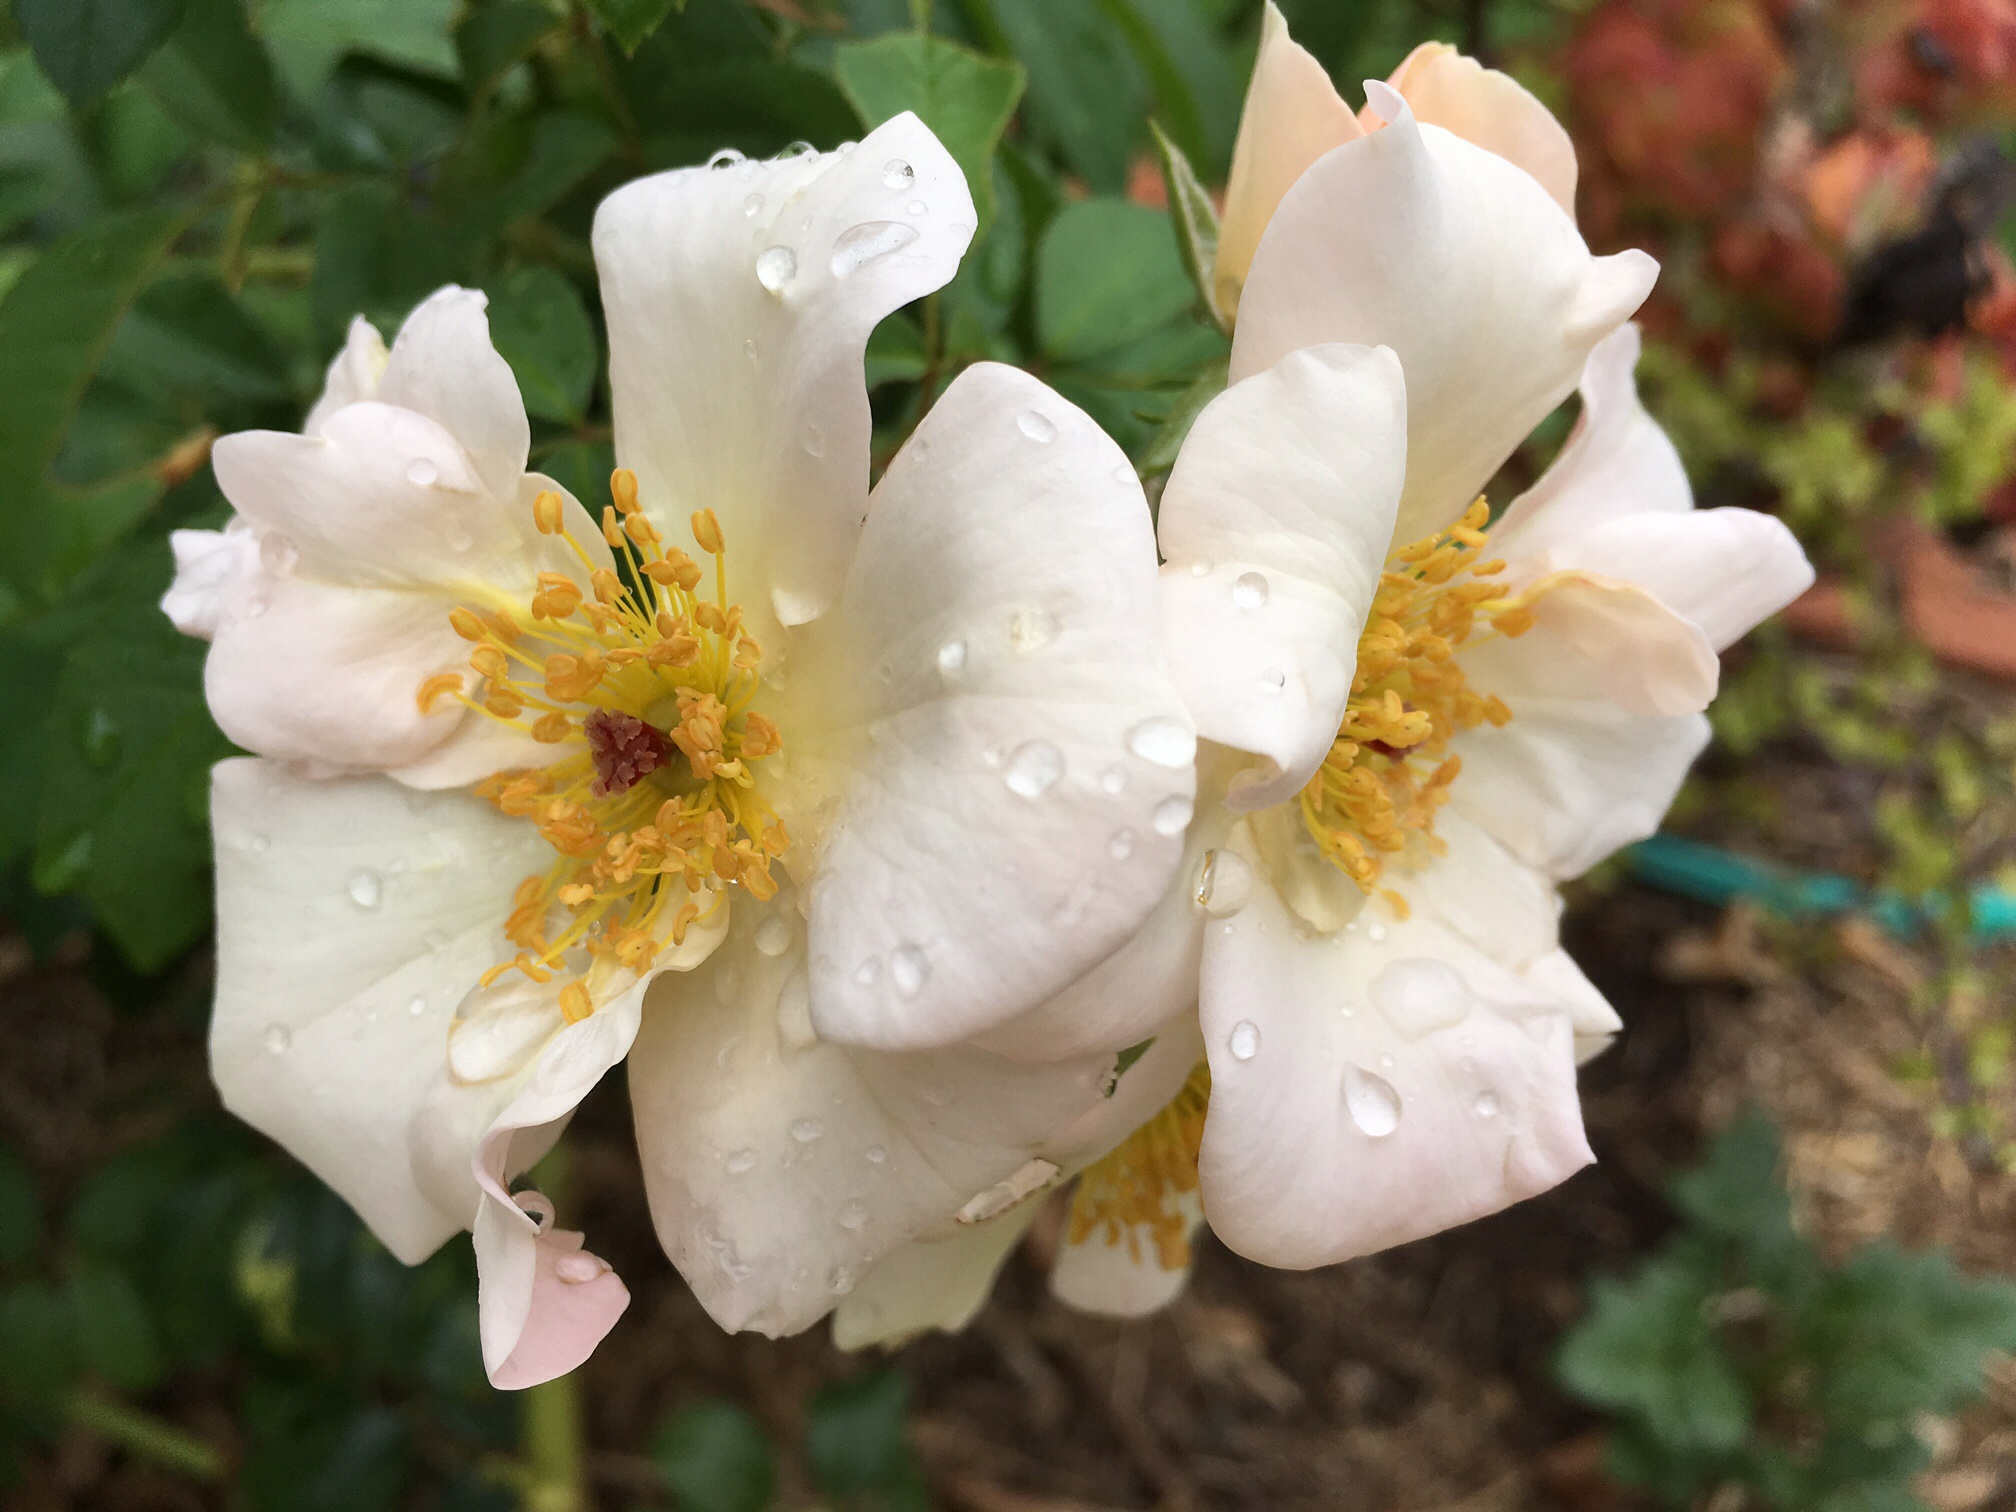 charged, refreshing rain, walking in the rain, stop and look at the rain, #itsraining, #coolchange, watering lawns, care for lawns, soaker hose for deep watering, golden rain tree, roses, climbing roses, rambling roses